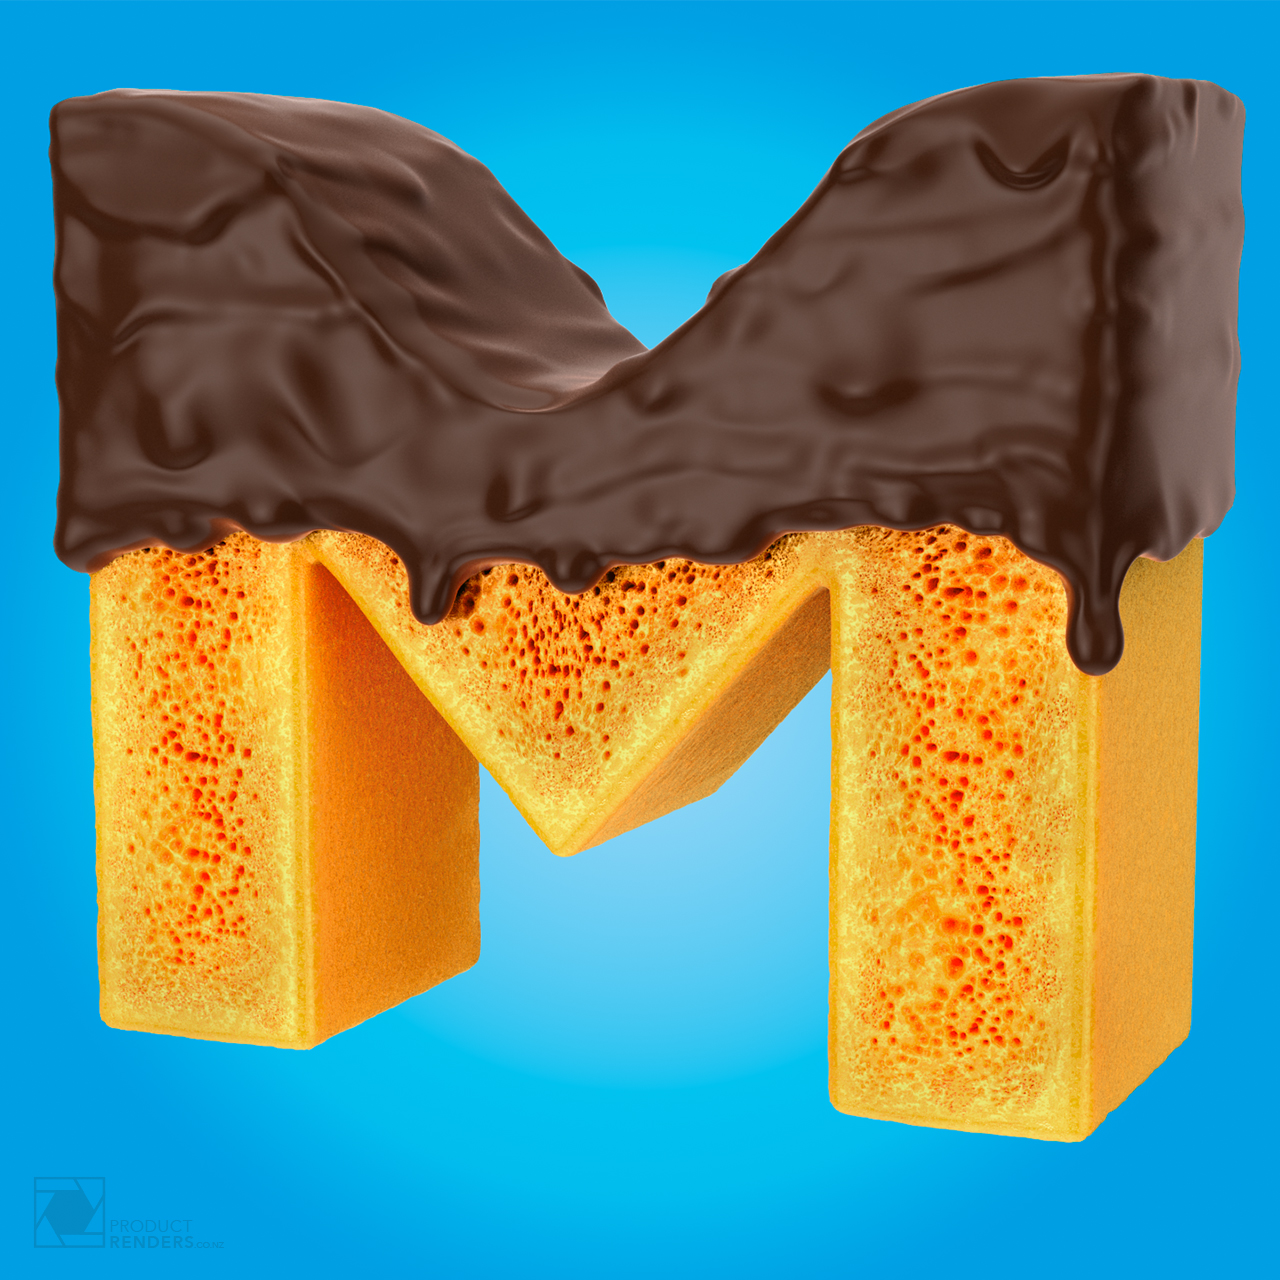 3D type render of a honeycomb M covered in runny chocolate sauce. This render is part of a YUMMY 3D text render.